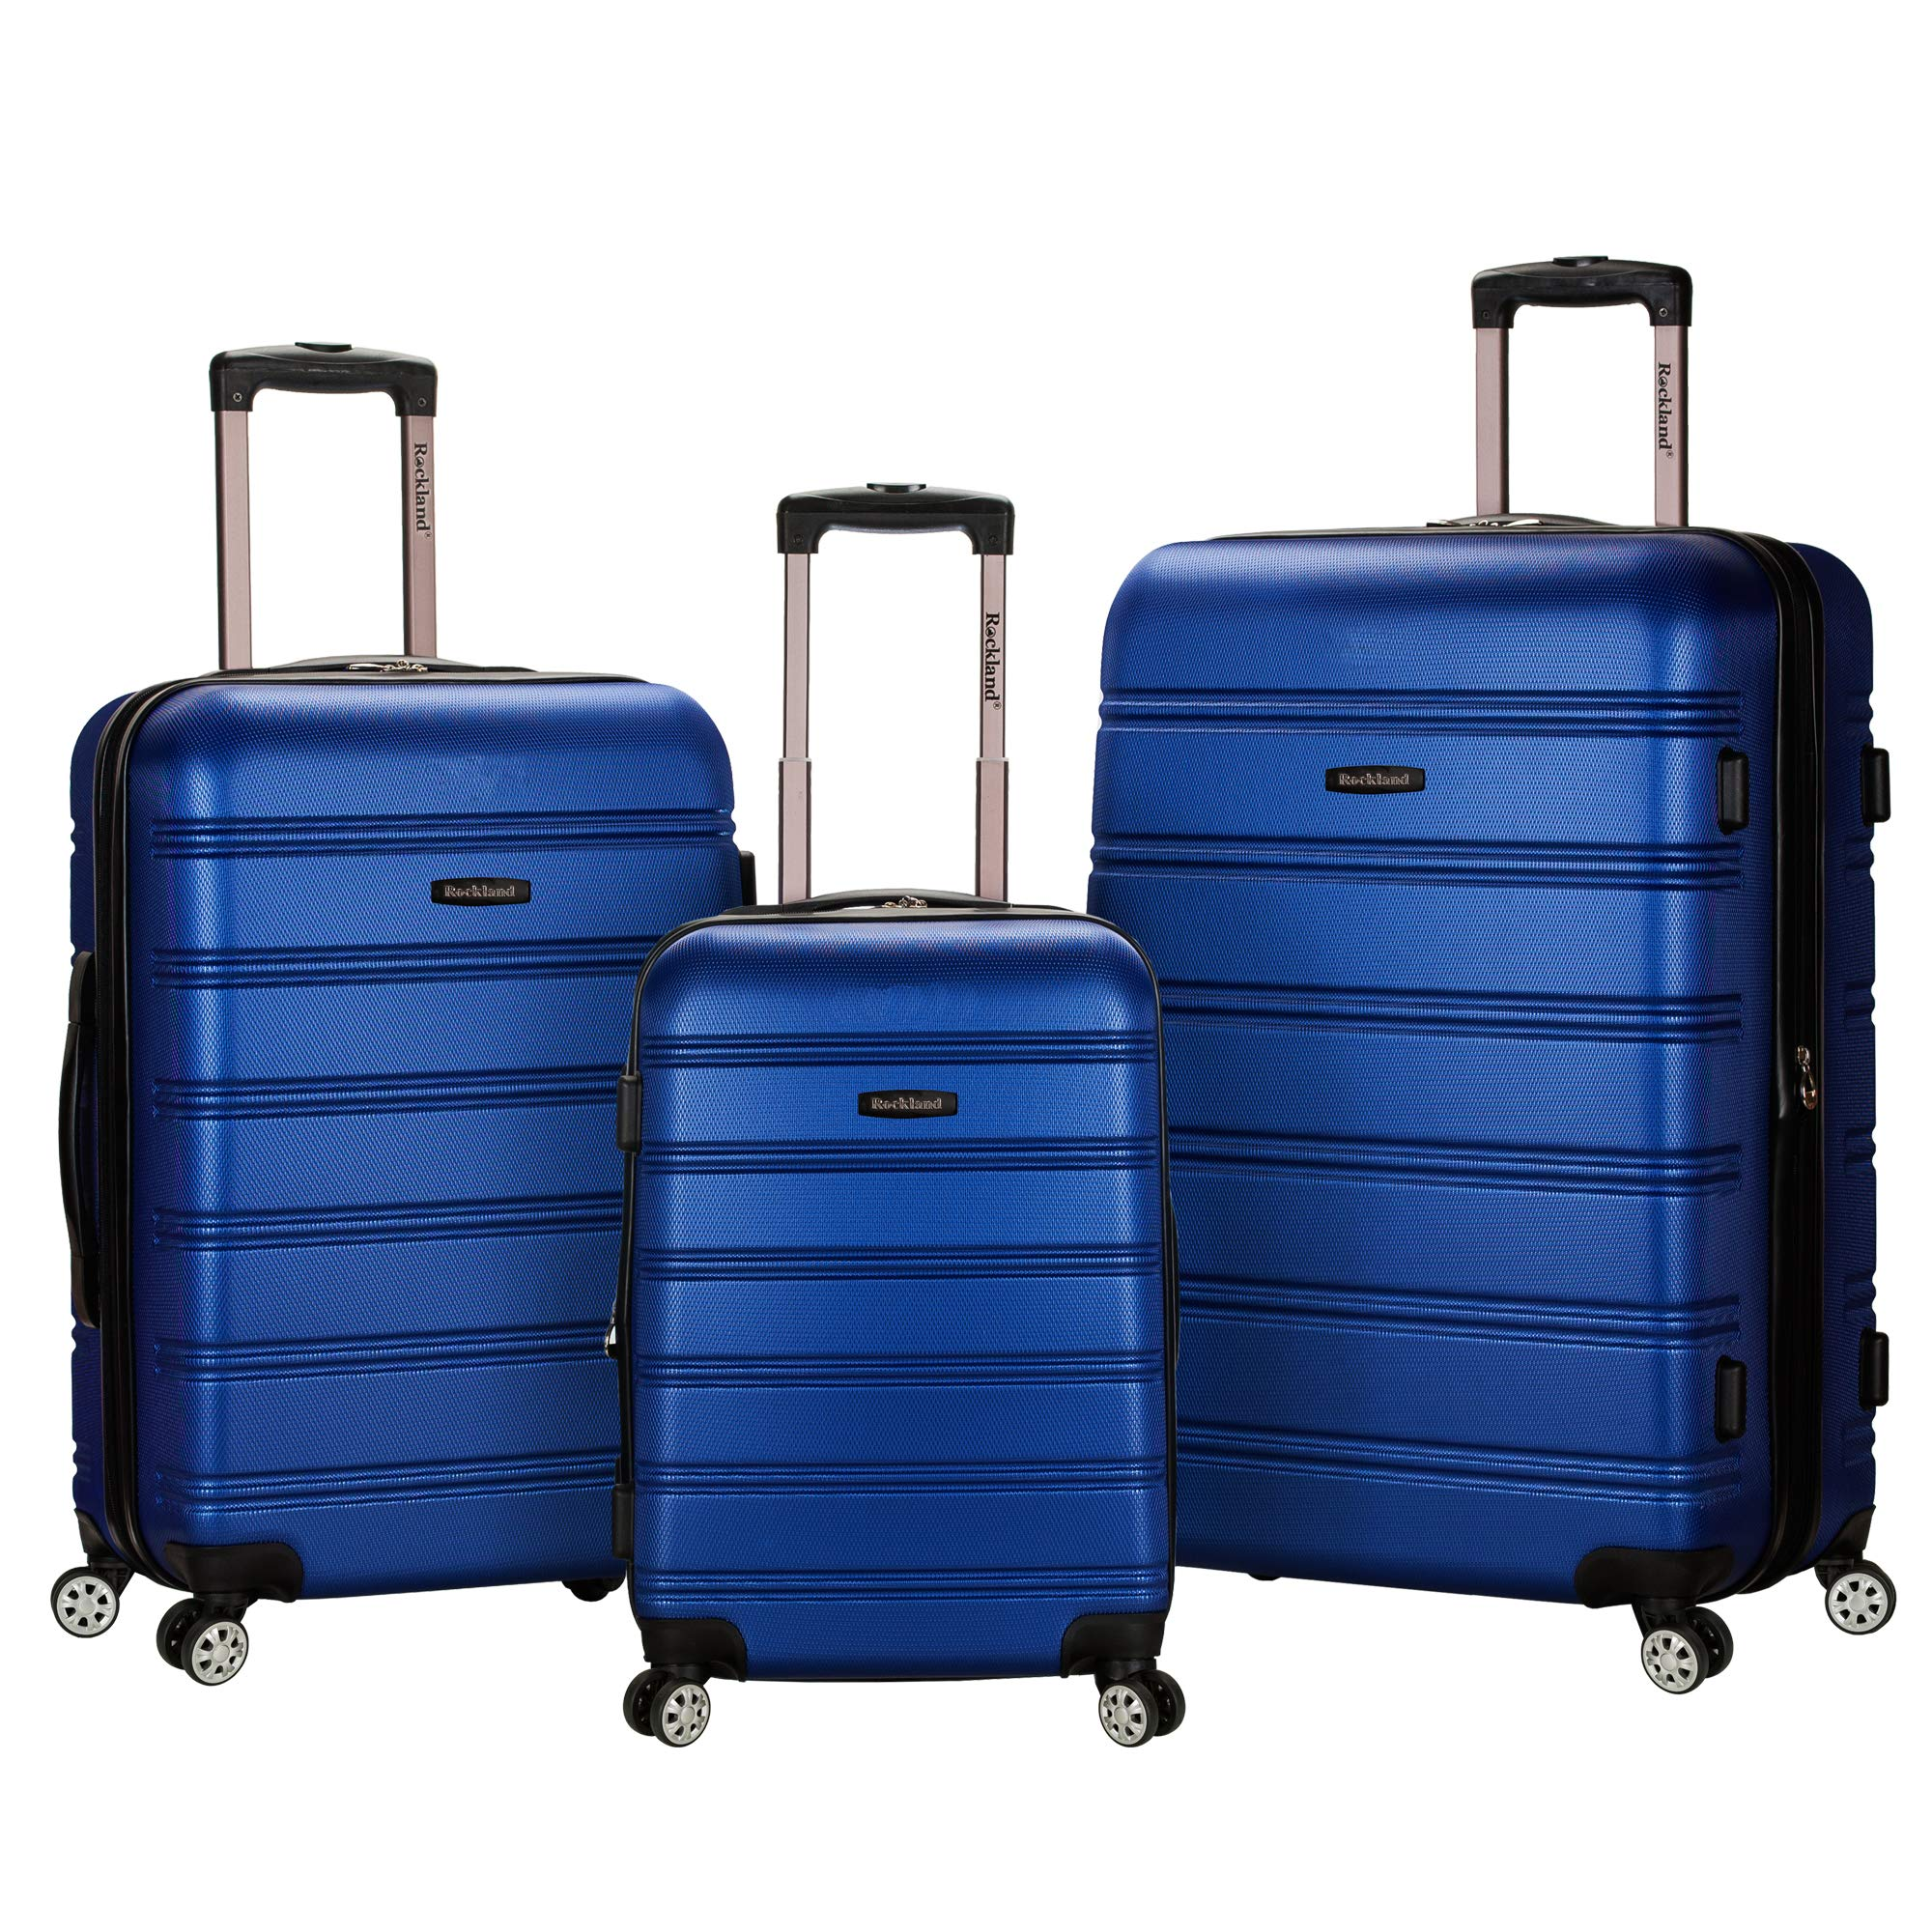 Rockland Melbourne 3 Pc Abs Luggage Set, Blue by Rockland